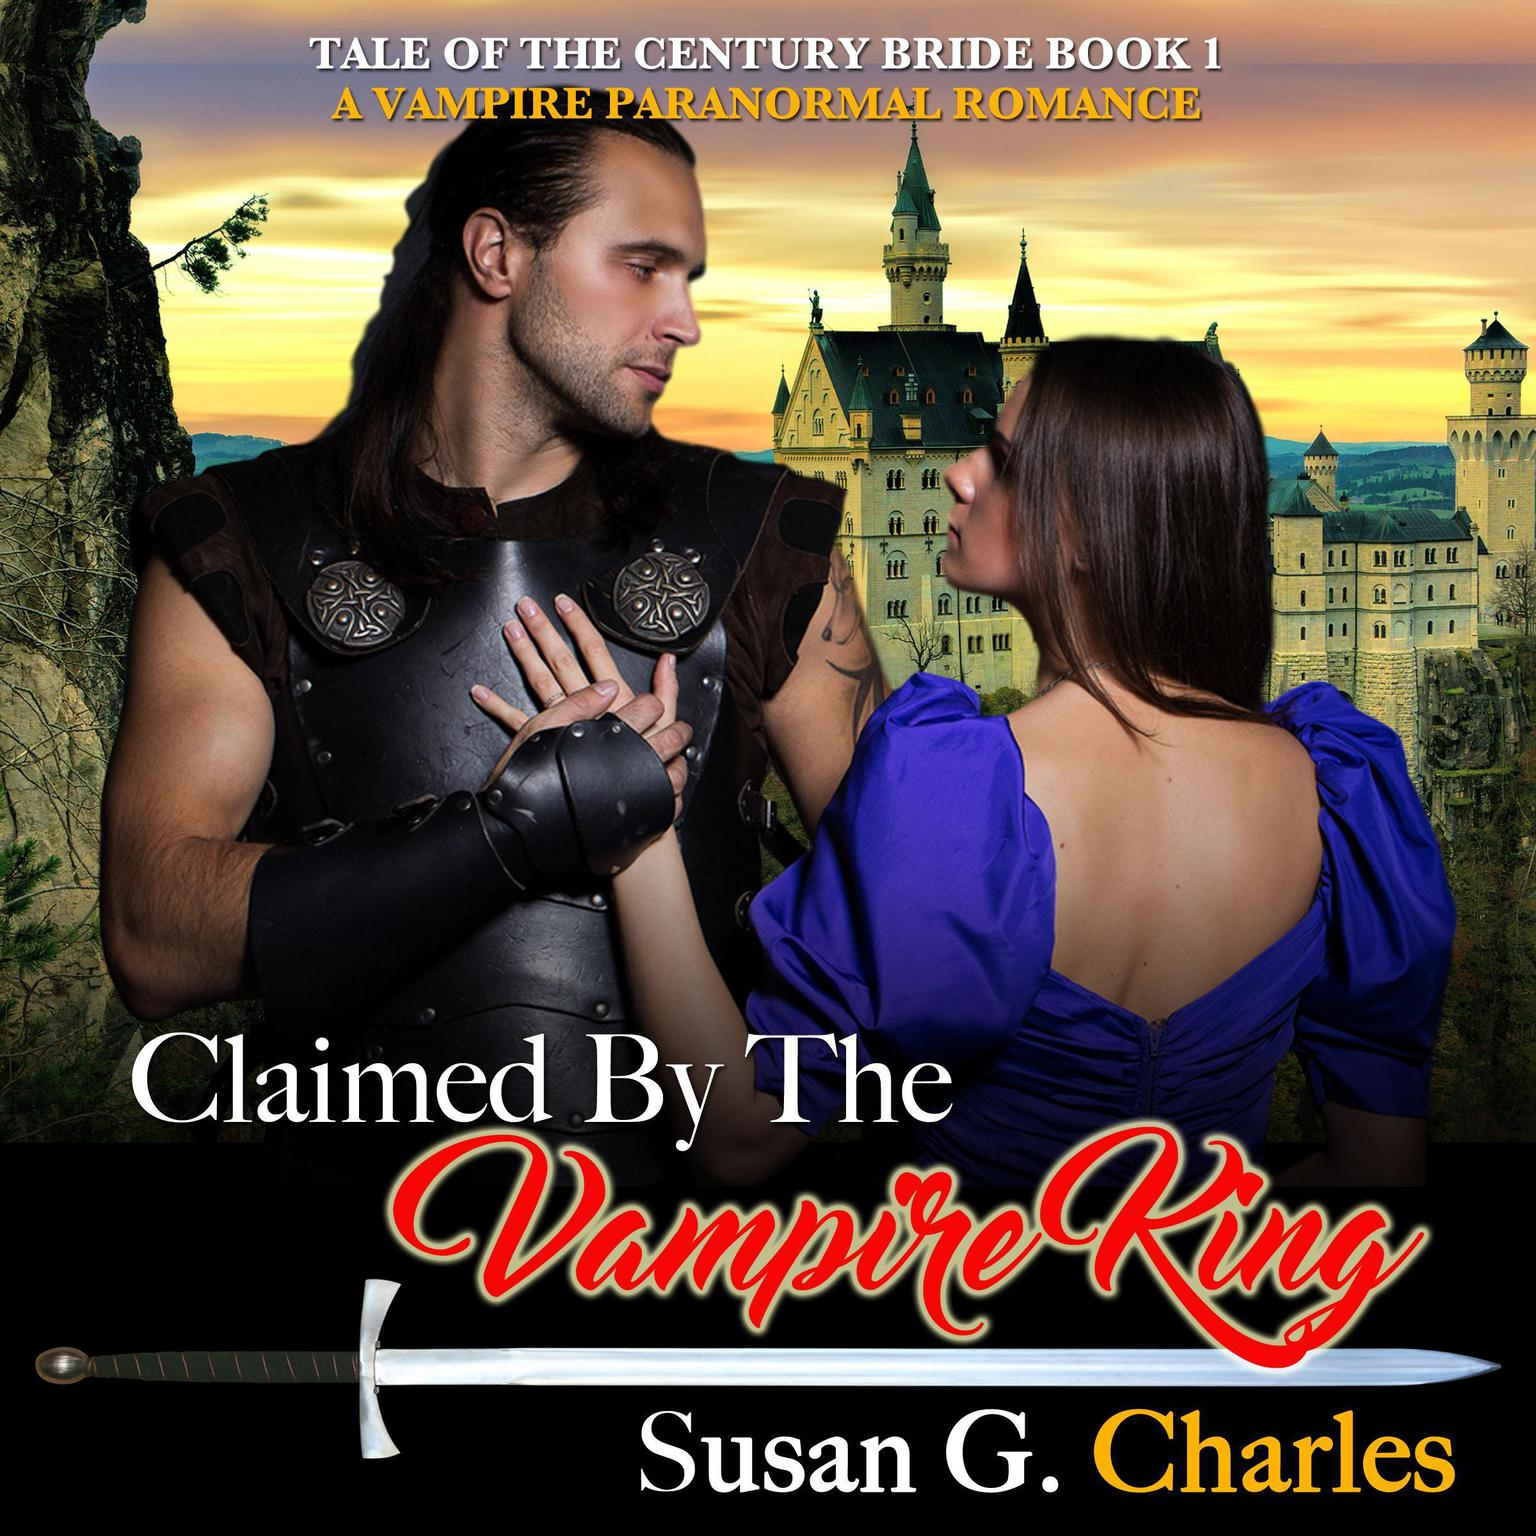 Claimed by the Vampire King - Book 1: A Vampire Paranormal Romance Audiobook